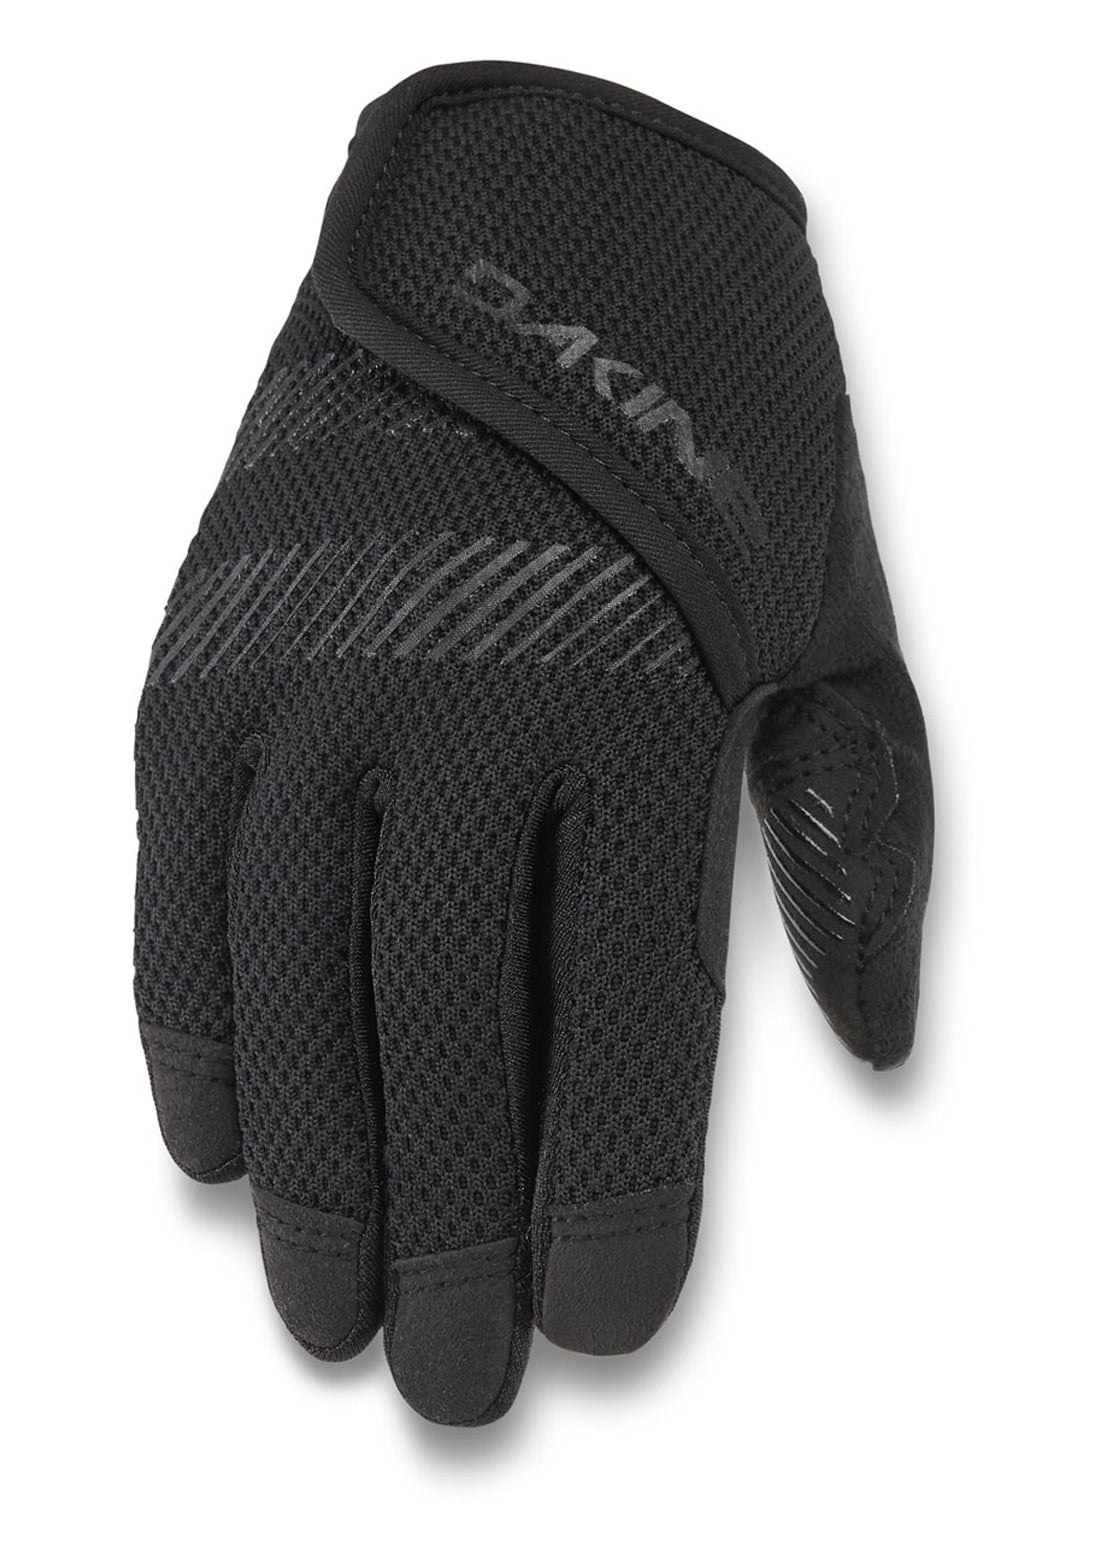 Dakine Junior Prodigy Mountain Bike Gloves Black